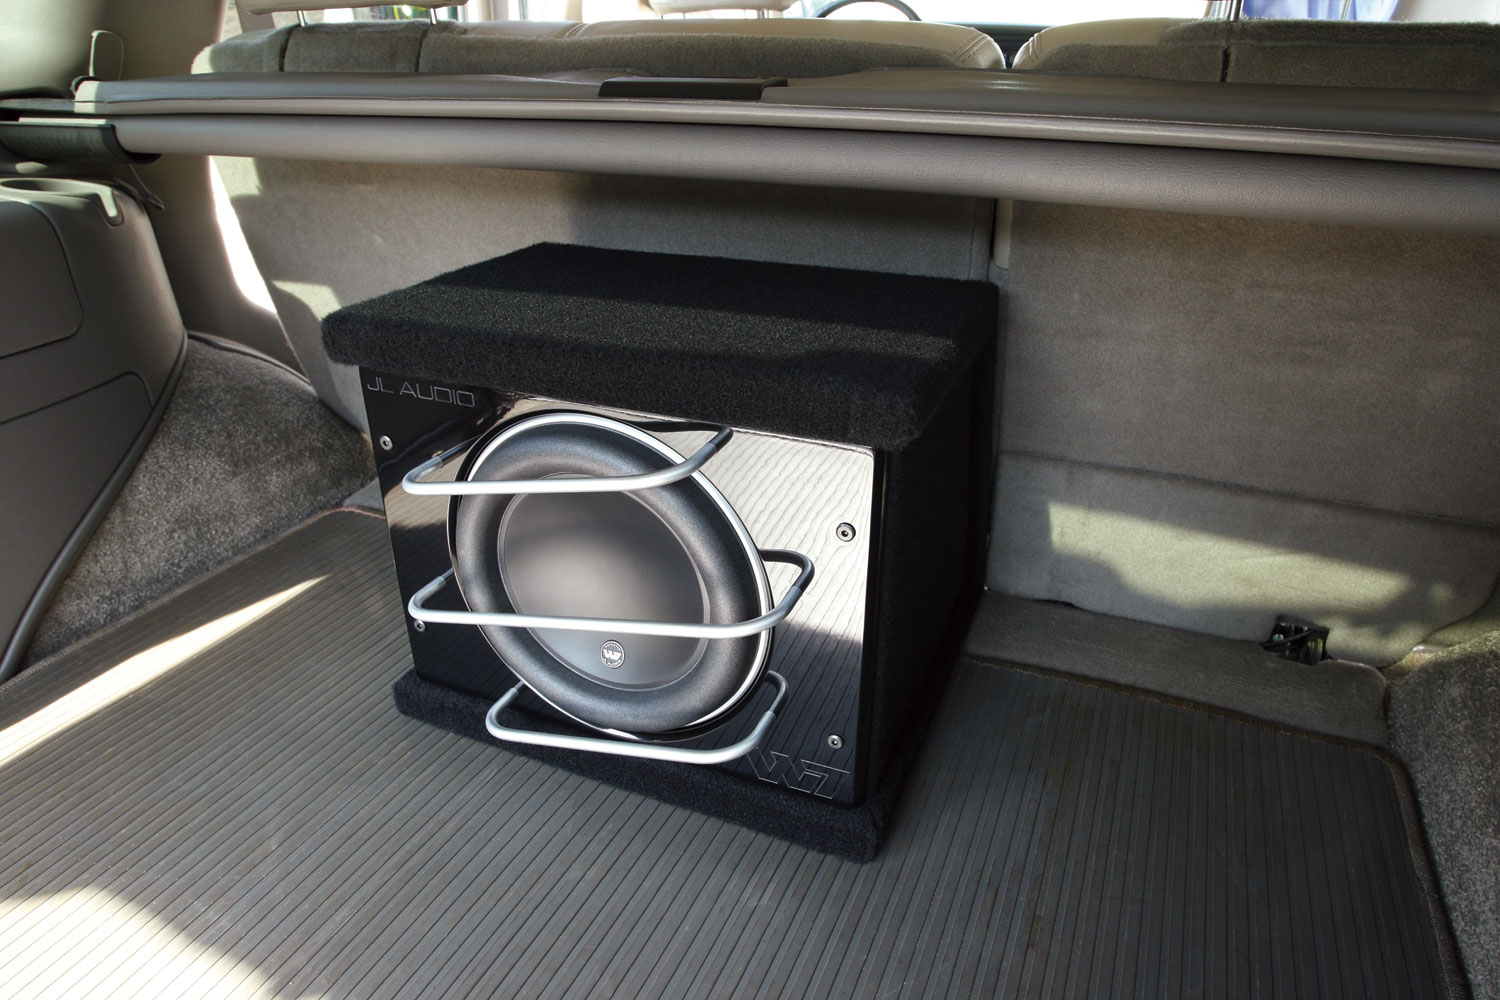 Hook up amp to rear speakers